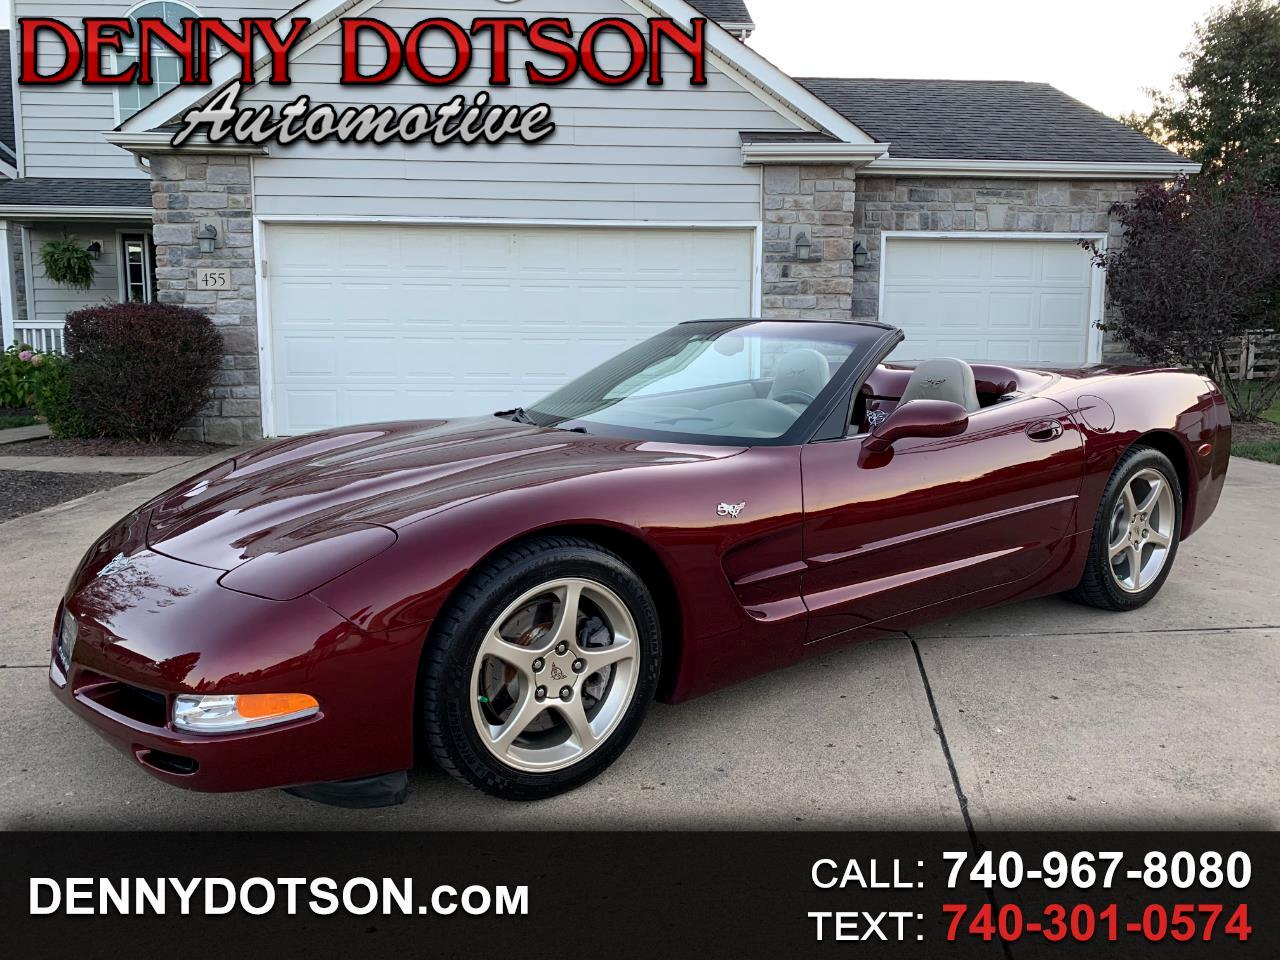 2003 Chevrolet Corvette 2dr Convertible